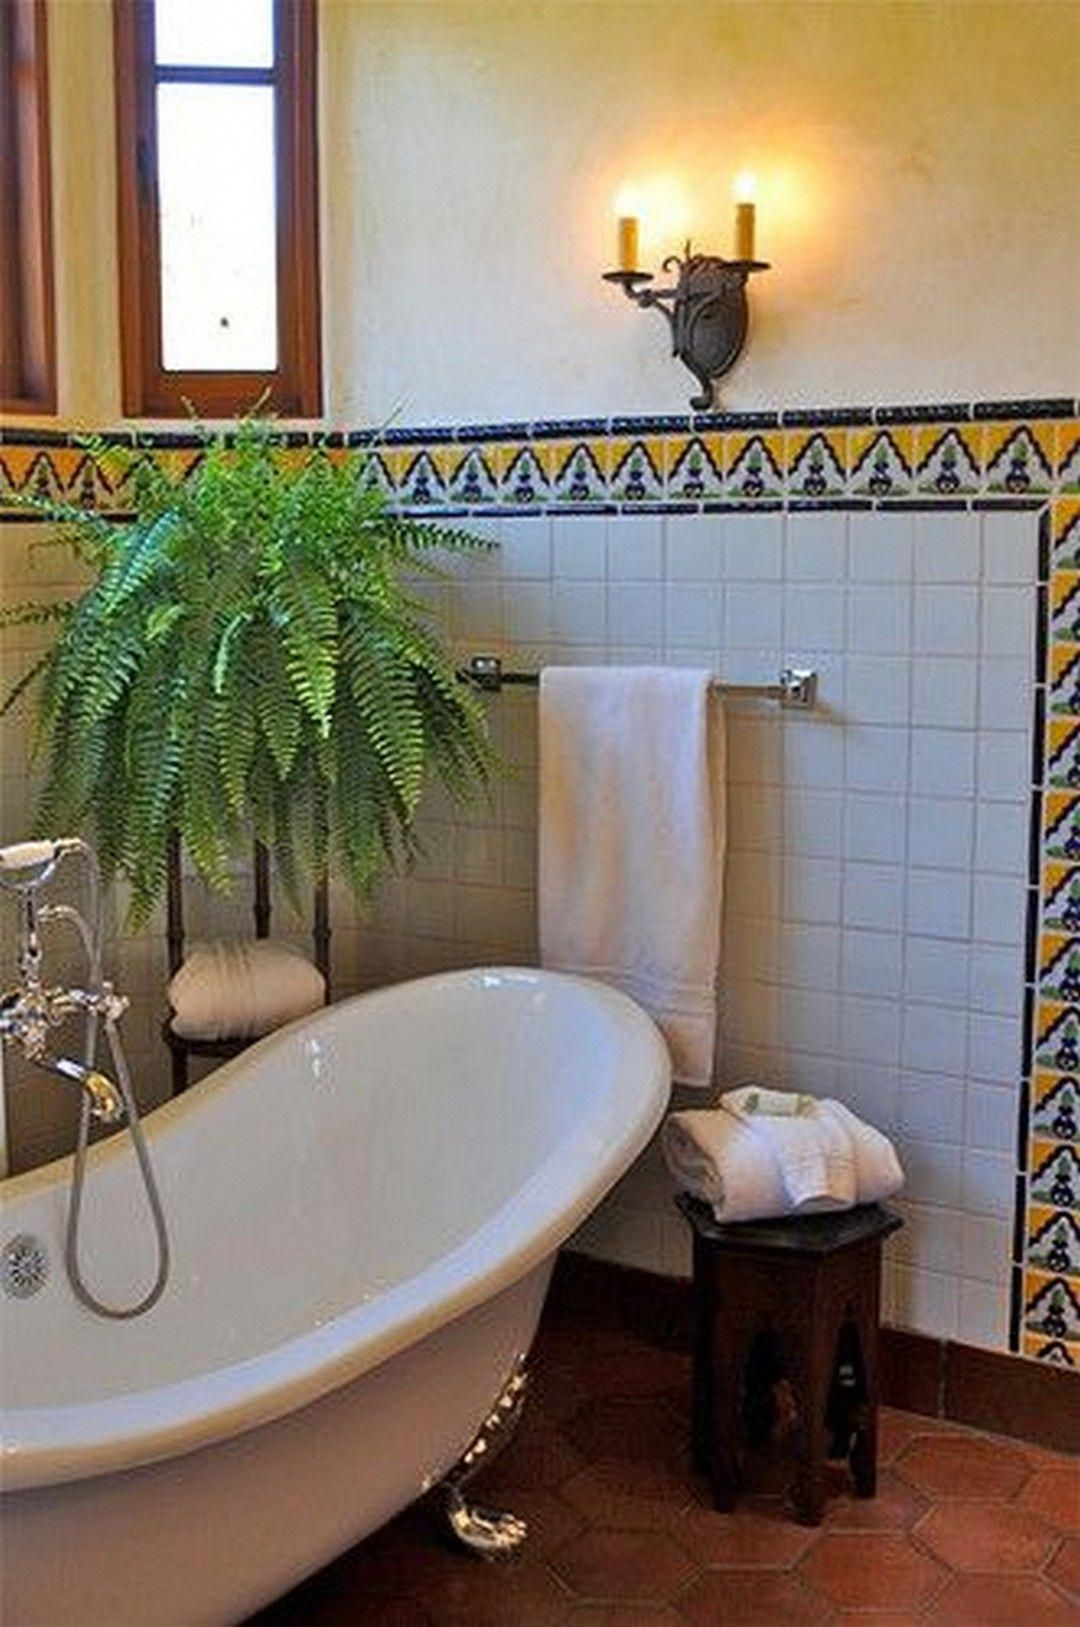 Source Houzz Com Have You Known On Spanish Tile Or You Like Spanish Tile M Spanishsty Spanish Style Bathrooms Spanish Style Interiors Spanish Style Homes